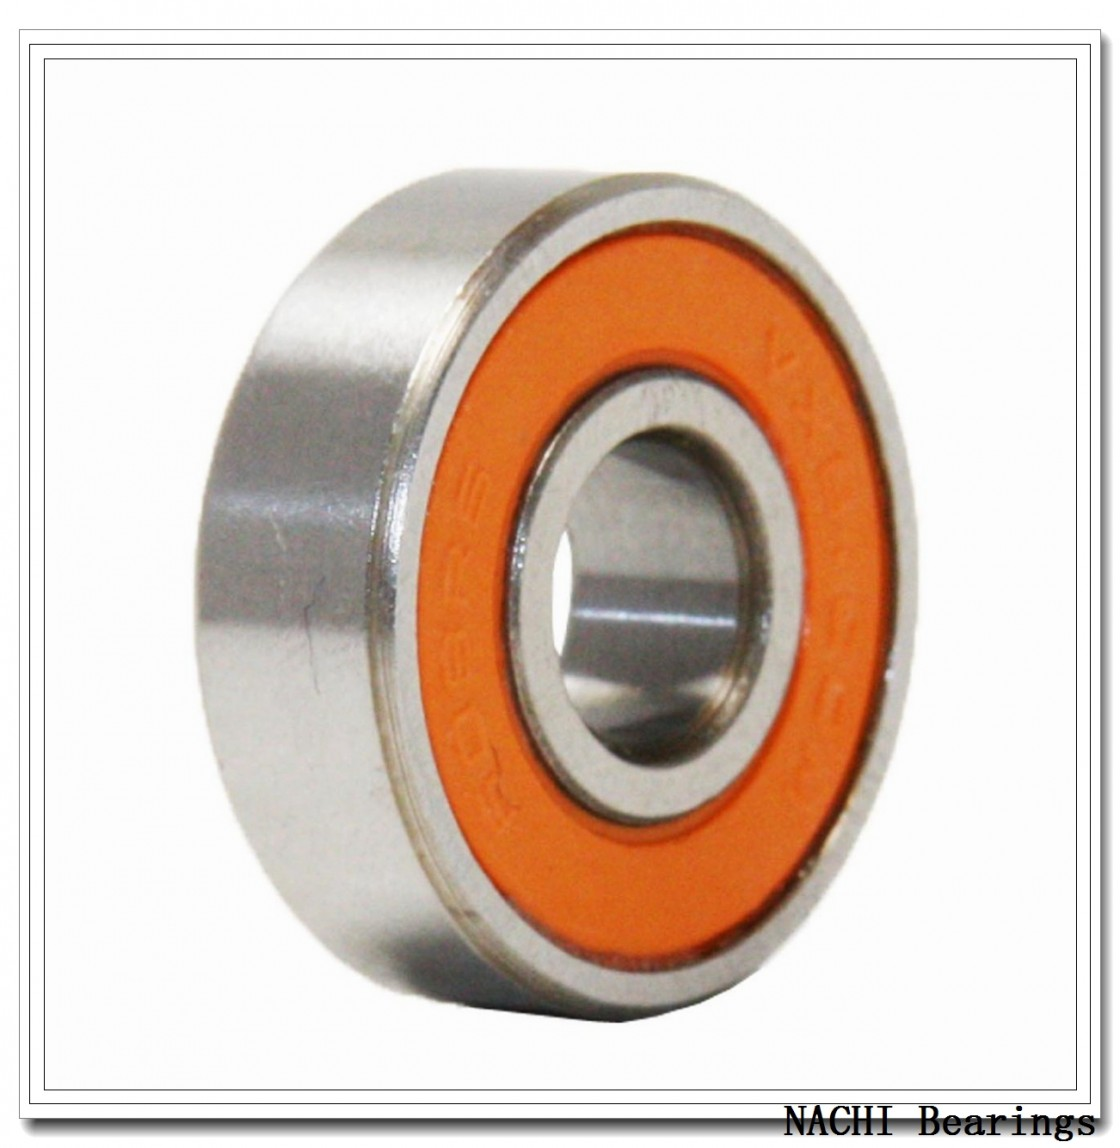 40 mm x 110 mm x 27 mm  NACHI N 408 cylindrical roller bearings